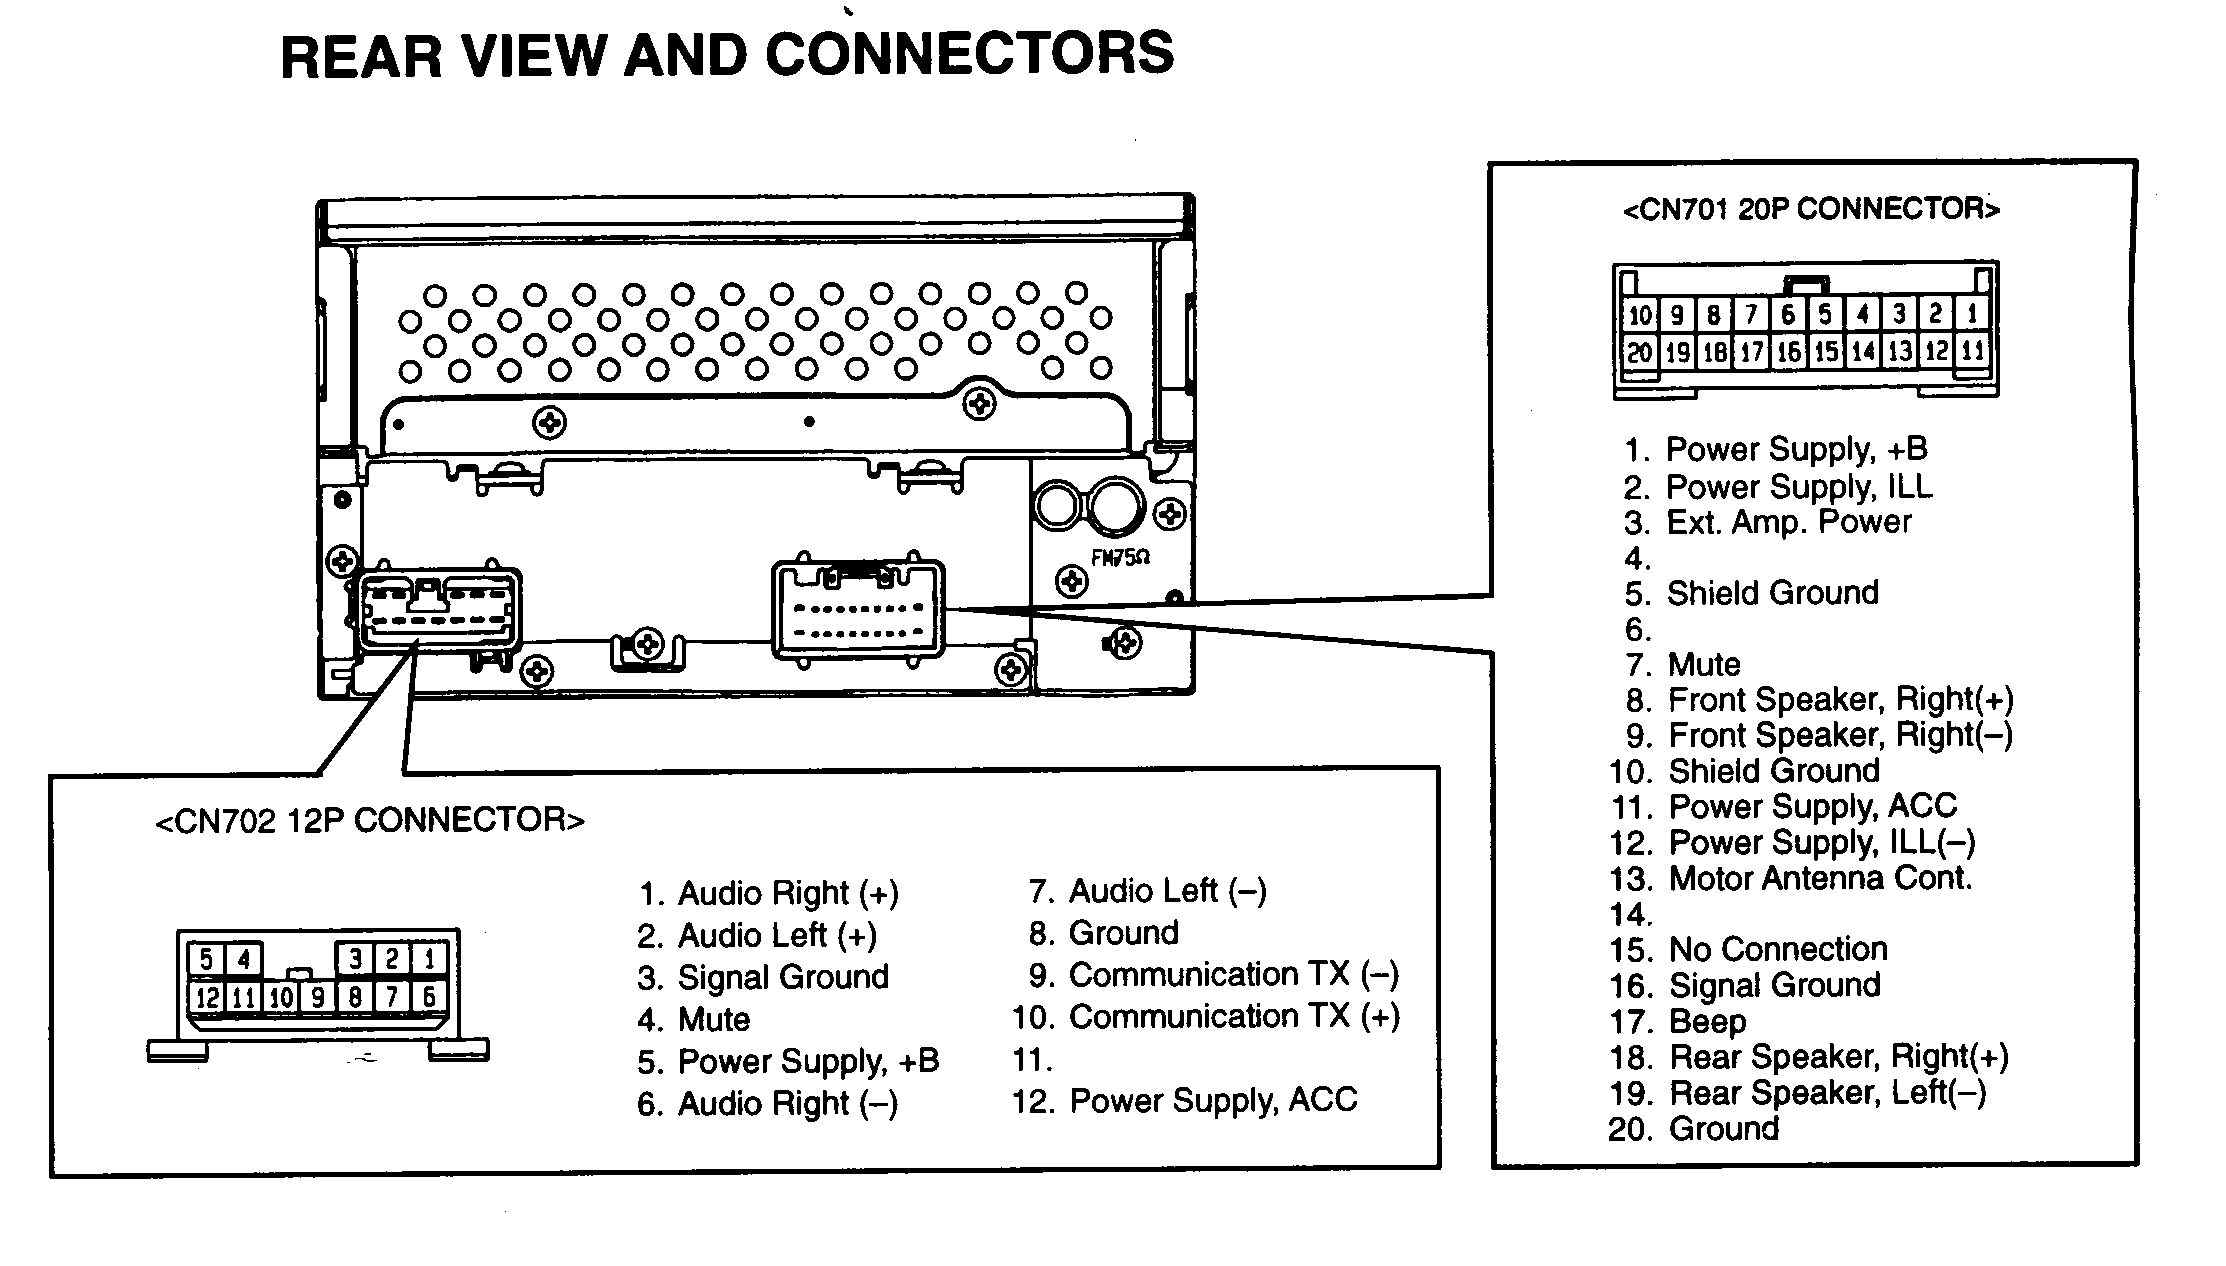 Car Stereo Wiring Diagram Ford Worksheet And 2004 Focus Factory Diagrams Detailed Schematics Rh Lelandlutheran Com 2003 Explorer